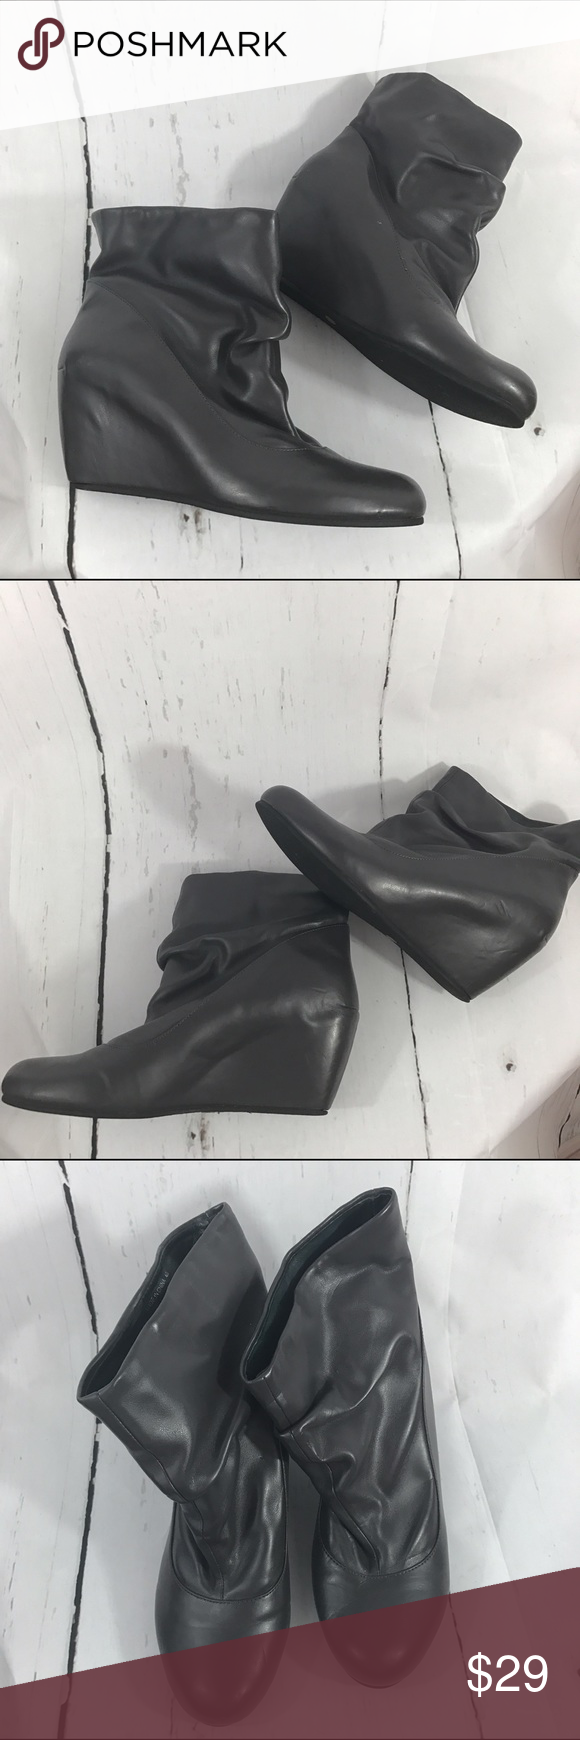 """💜💜 WEDGE ANKLE BOOTIES B3 Does not come with original box. Aldo Size 40 which is a 9 Condition: Has minimal marks/ nicks  Heel height: 3""""  Material: unknown  Item location: bin 3   **bundles save 10%** no trades/no modeling/no asking for lowest Aldo Shoes Ankle Boots & Booties"""